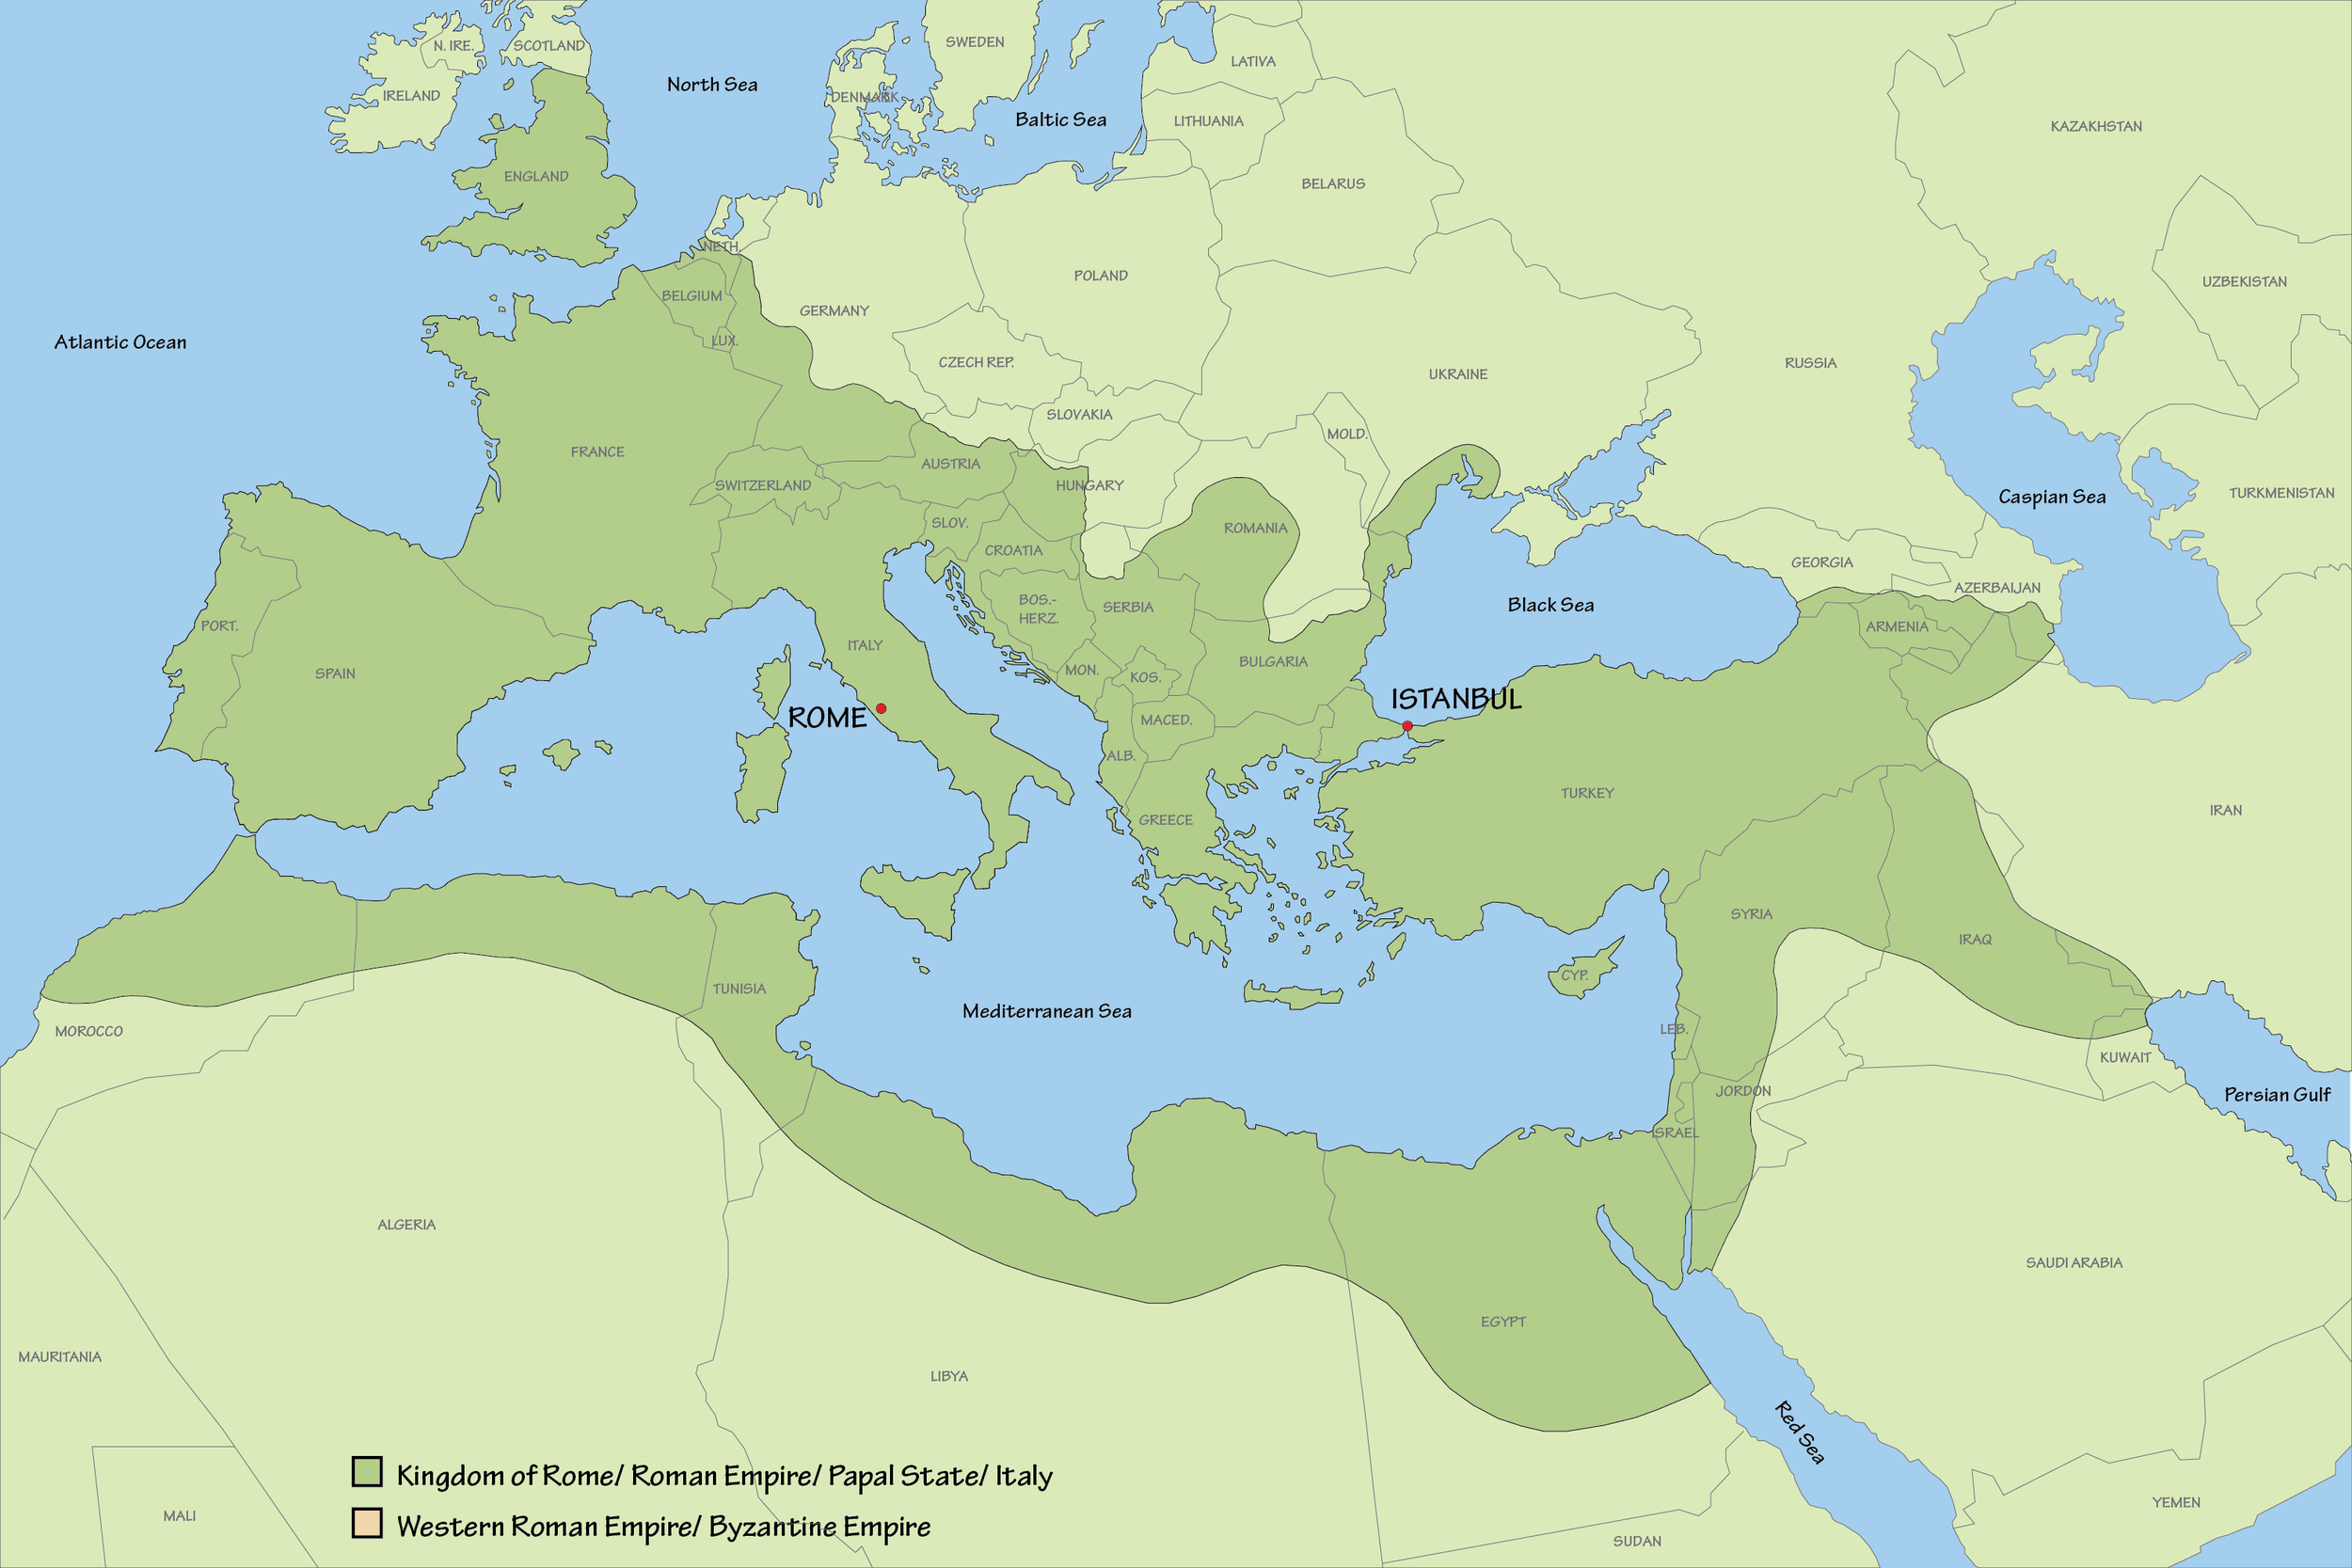 Exapnsion of Roman Empire Diagram_08-01.png